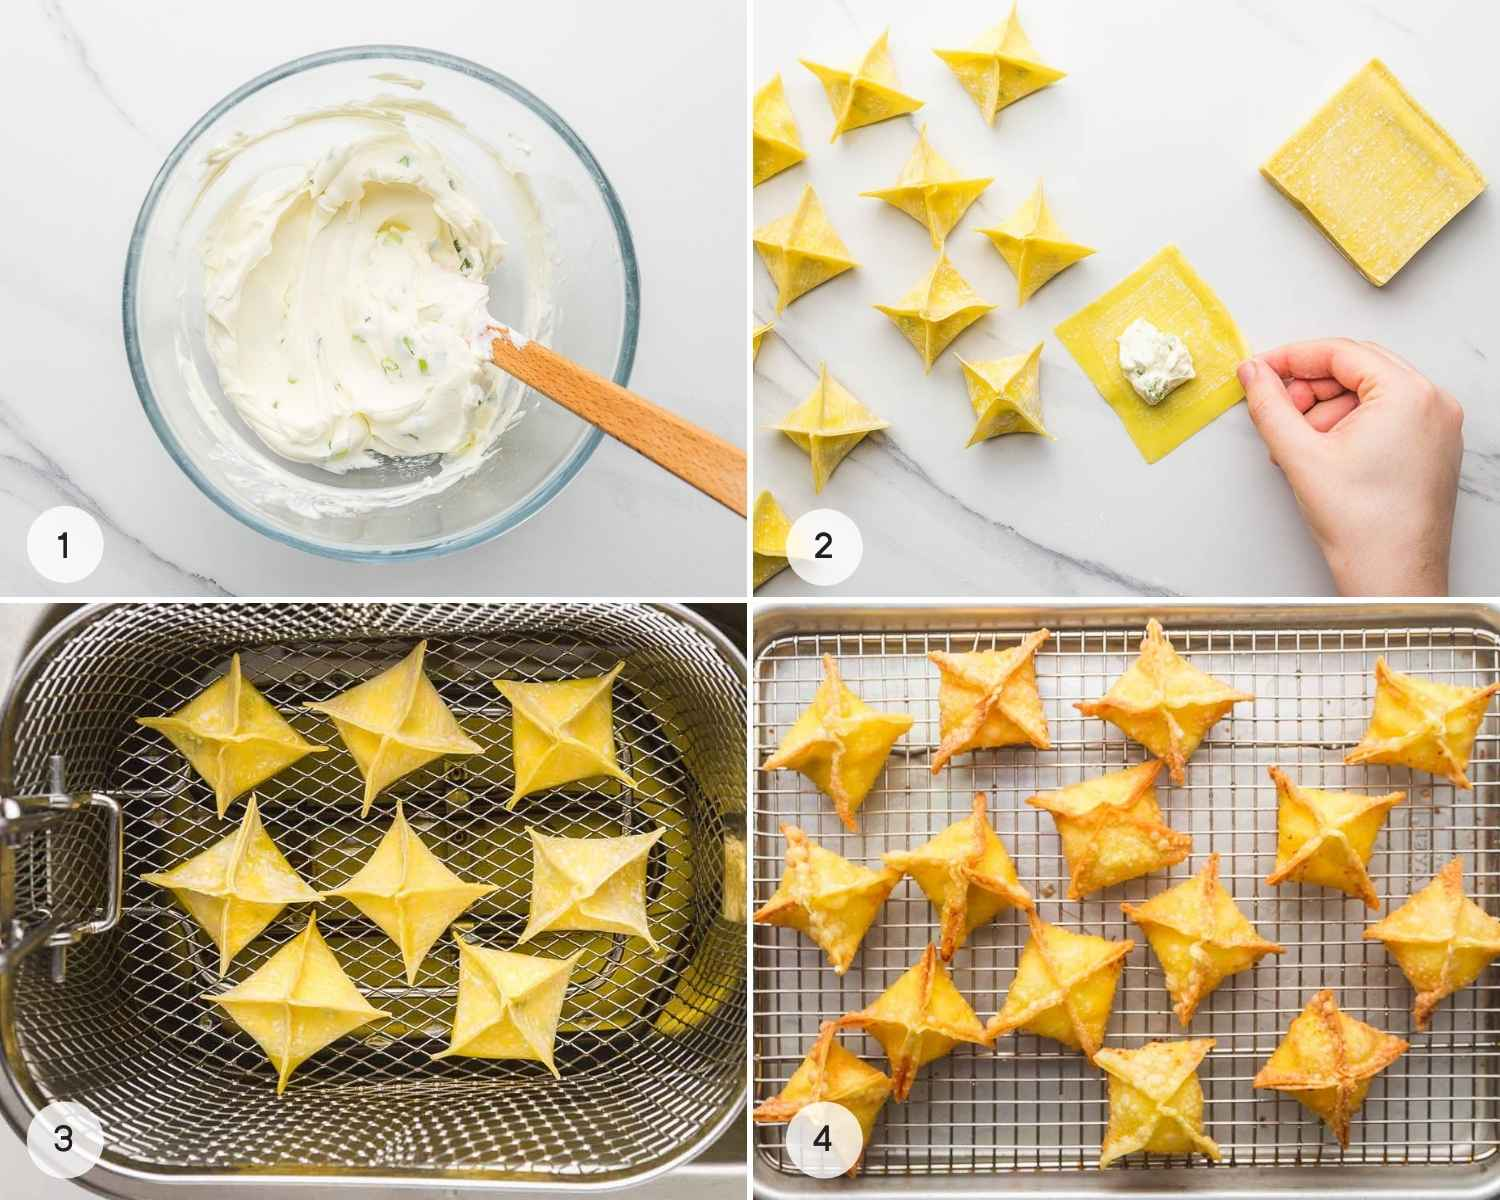 A collage with 4 images showing how to make rangoons, from making the mixture to filling the wontons and frying them.